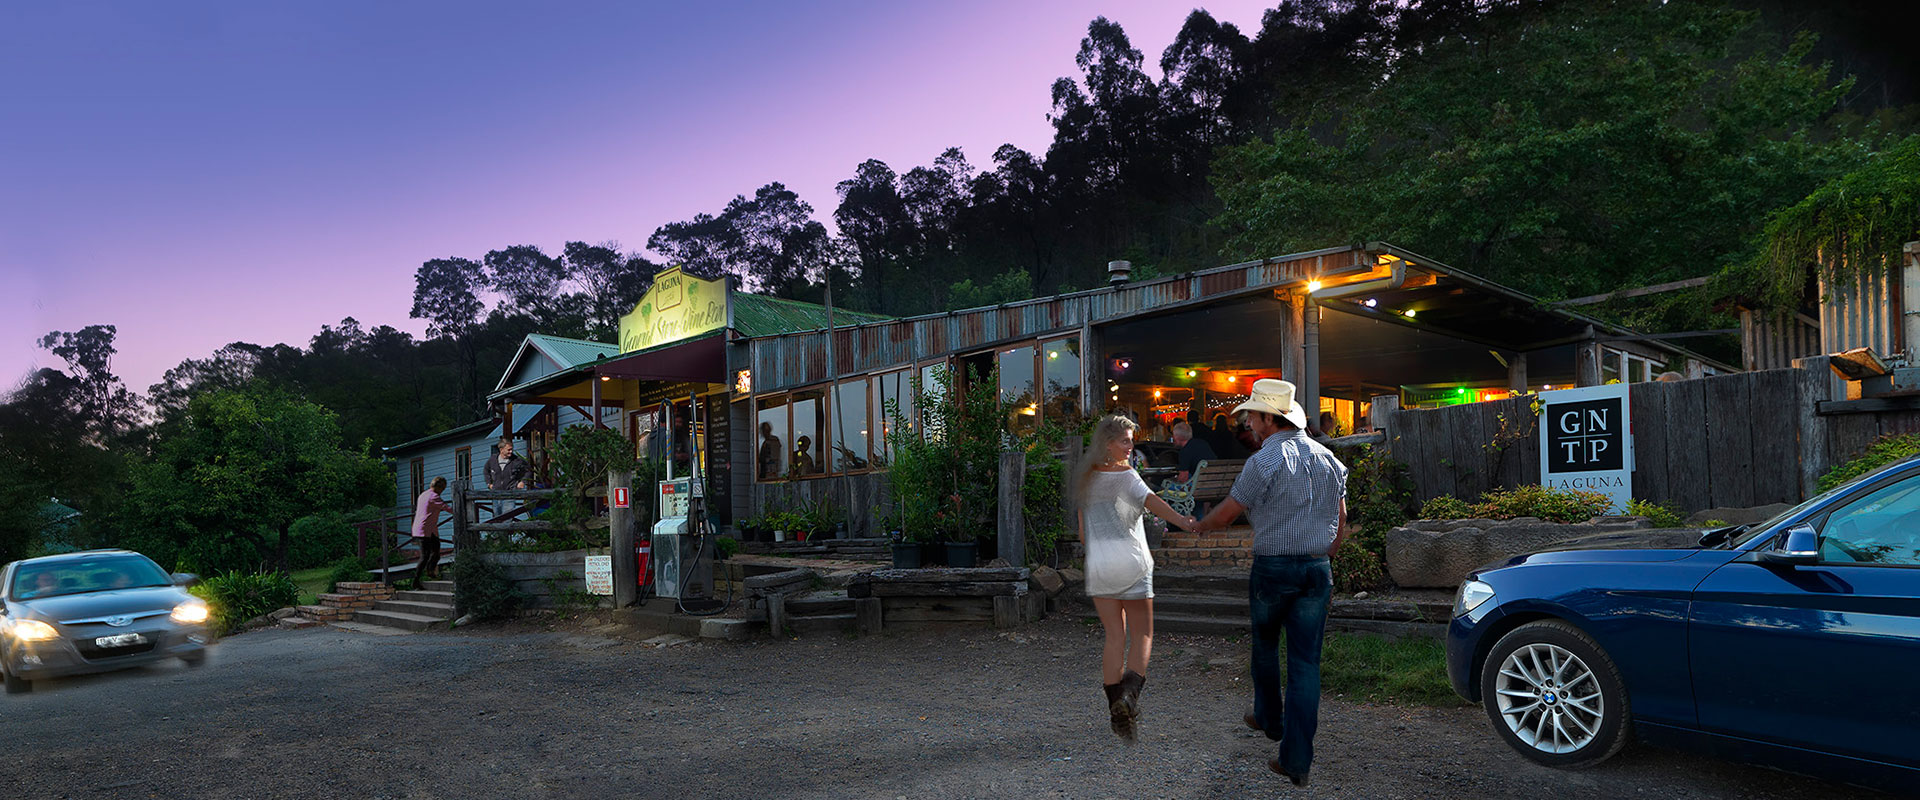 GNTP, Hunter Valley Cafe and live music venue